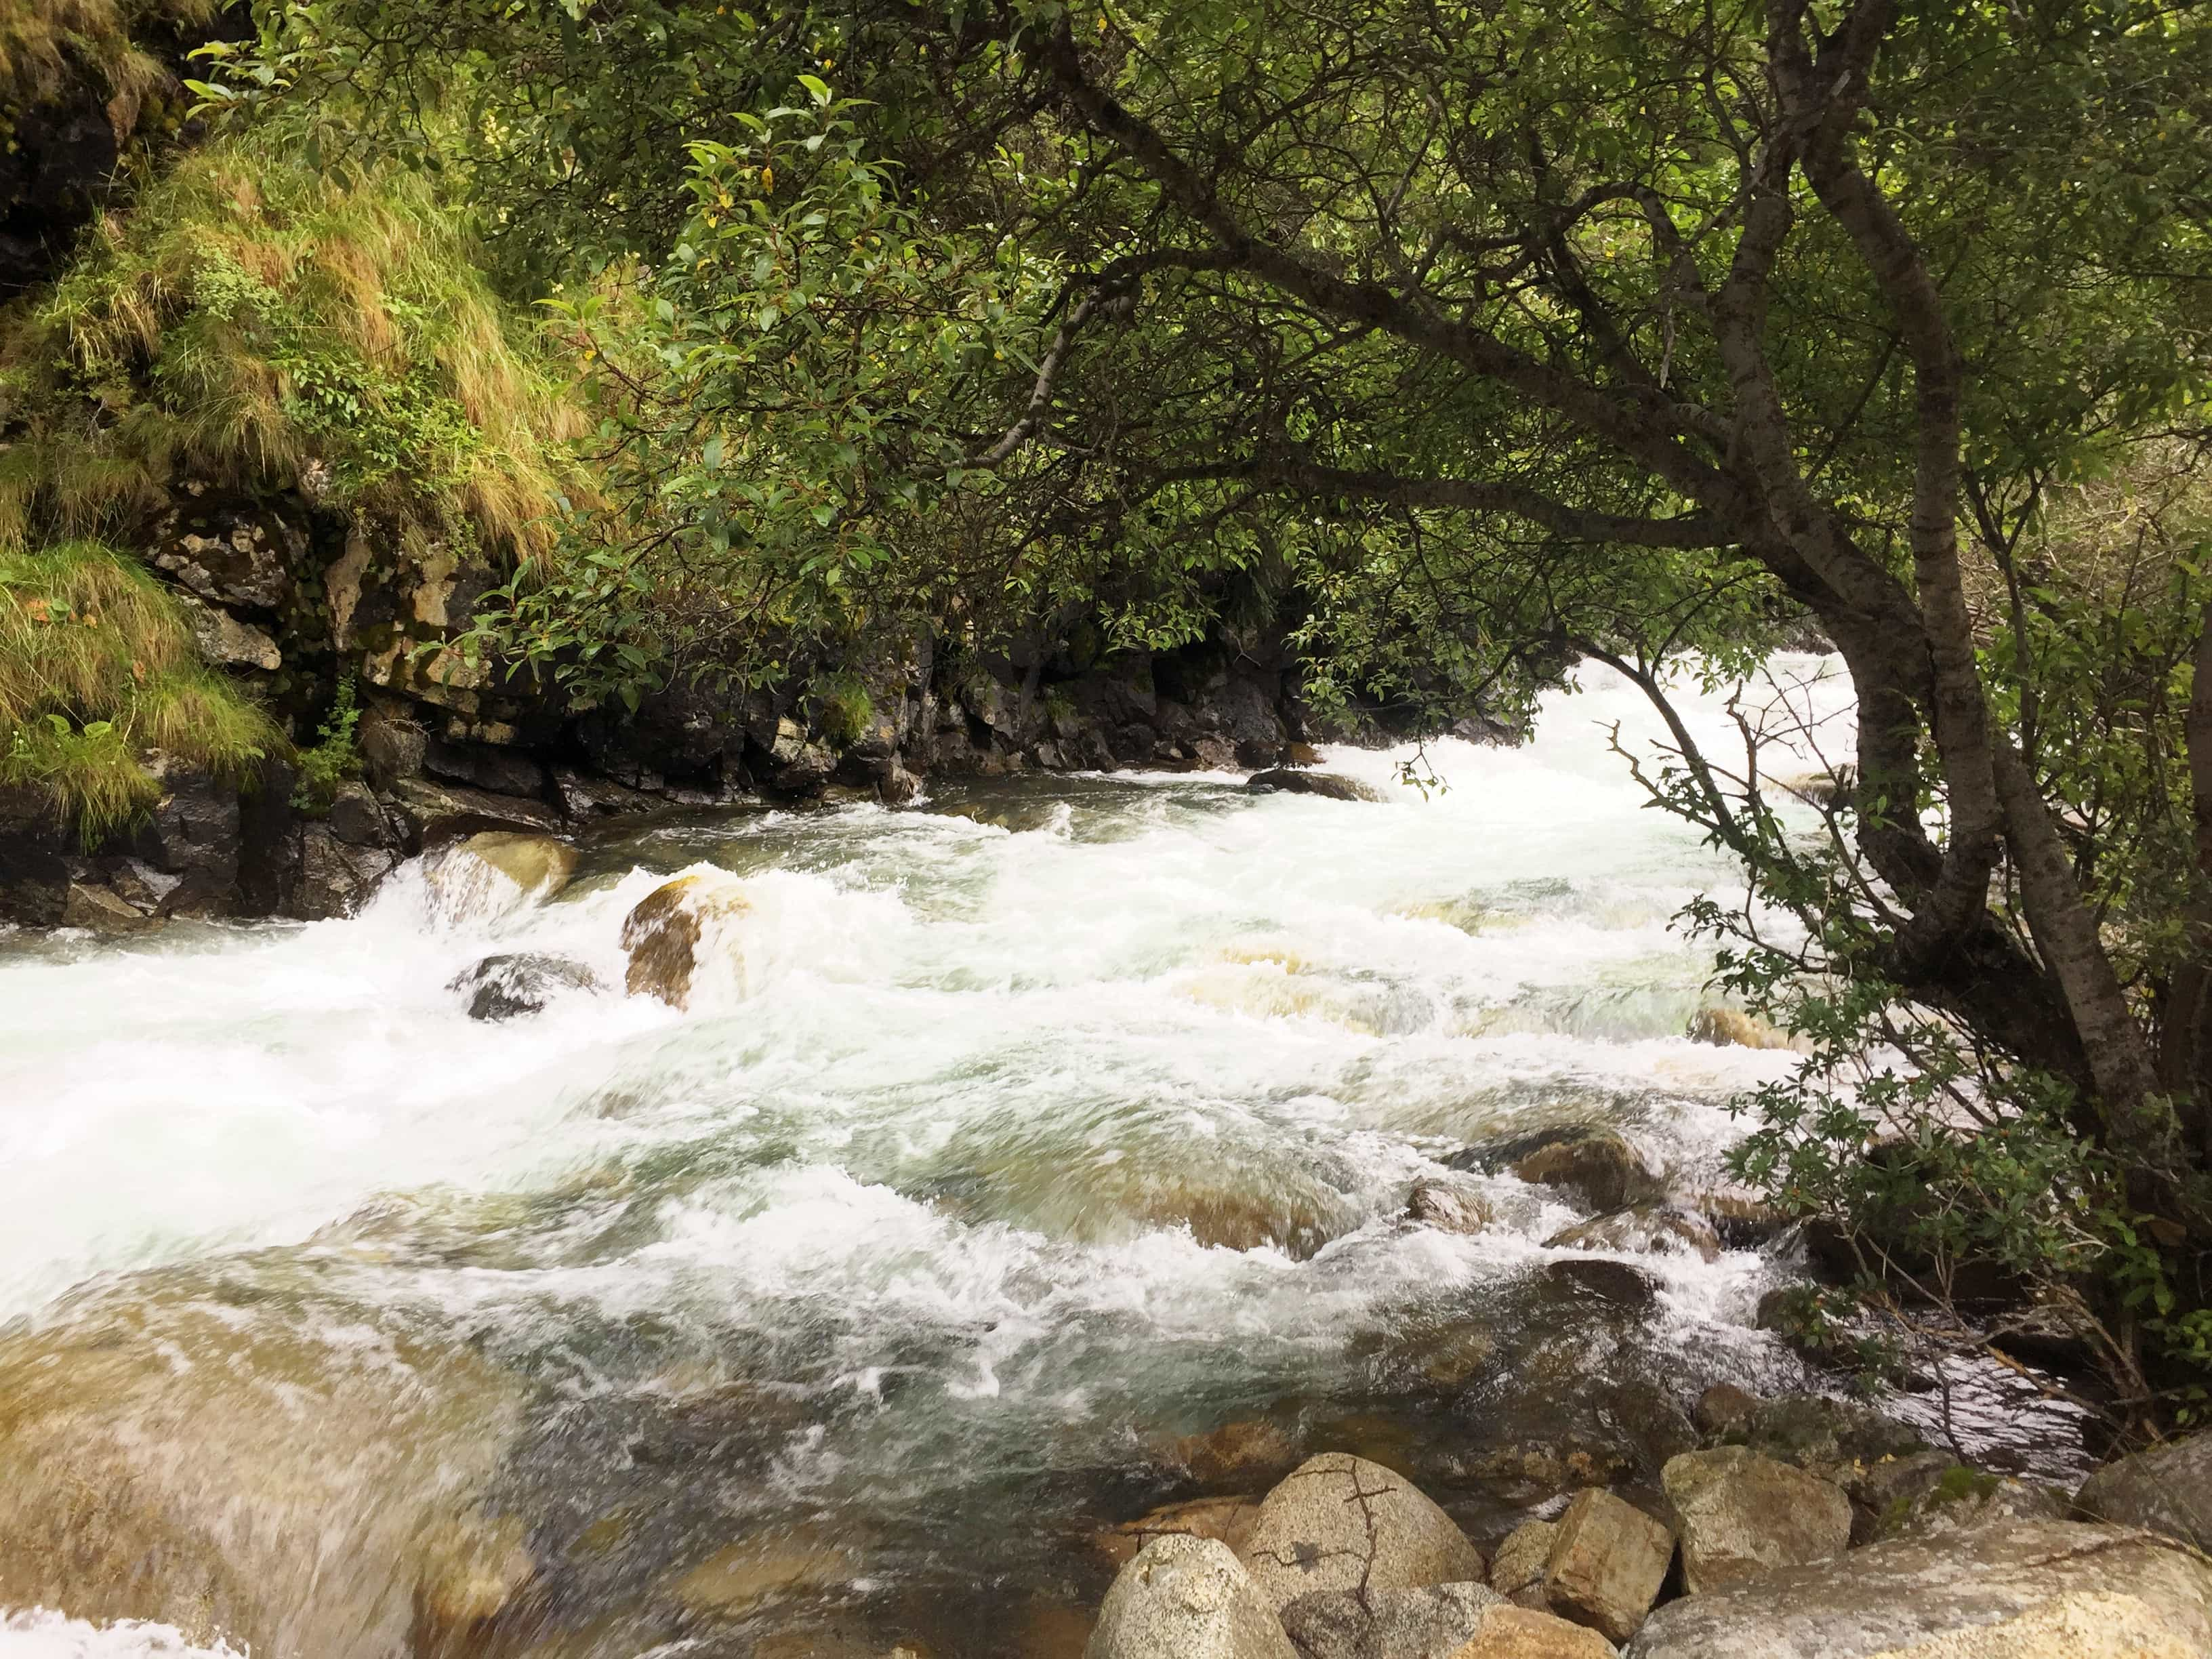 Bank of the mountain river in Tibet